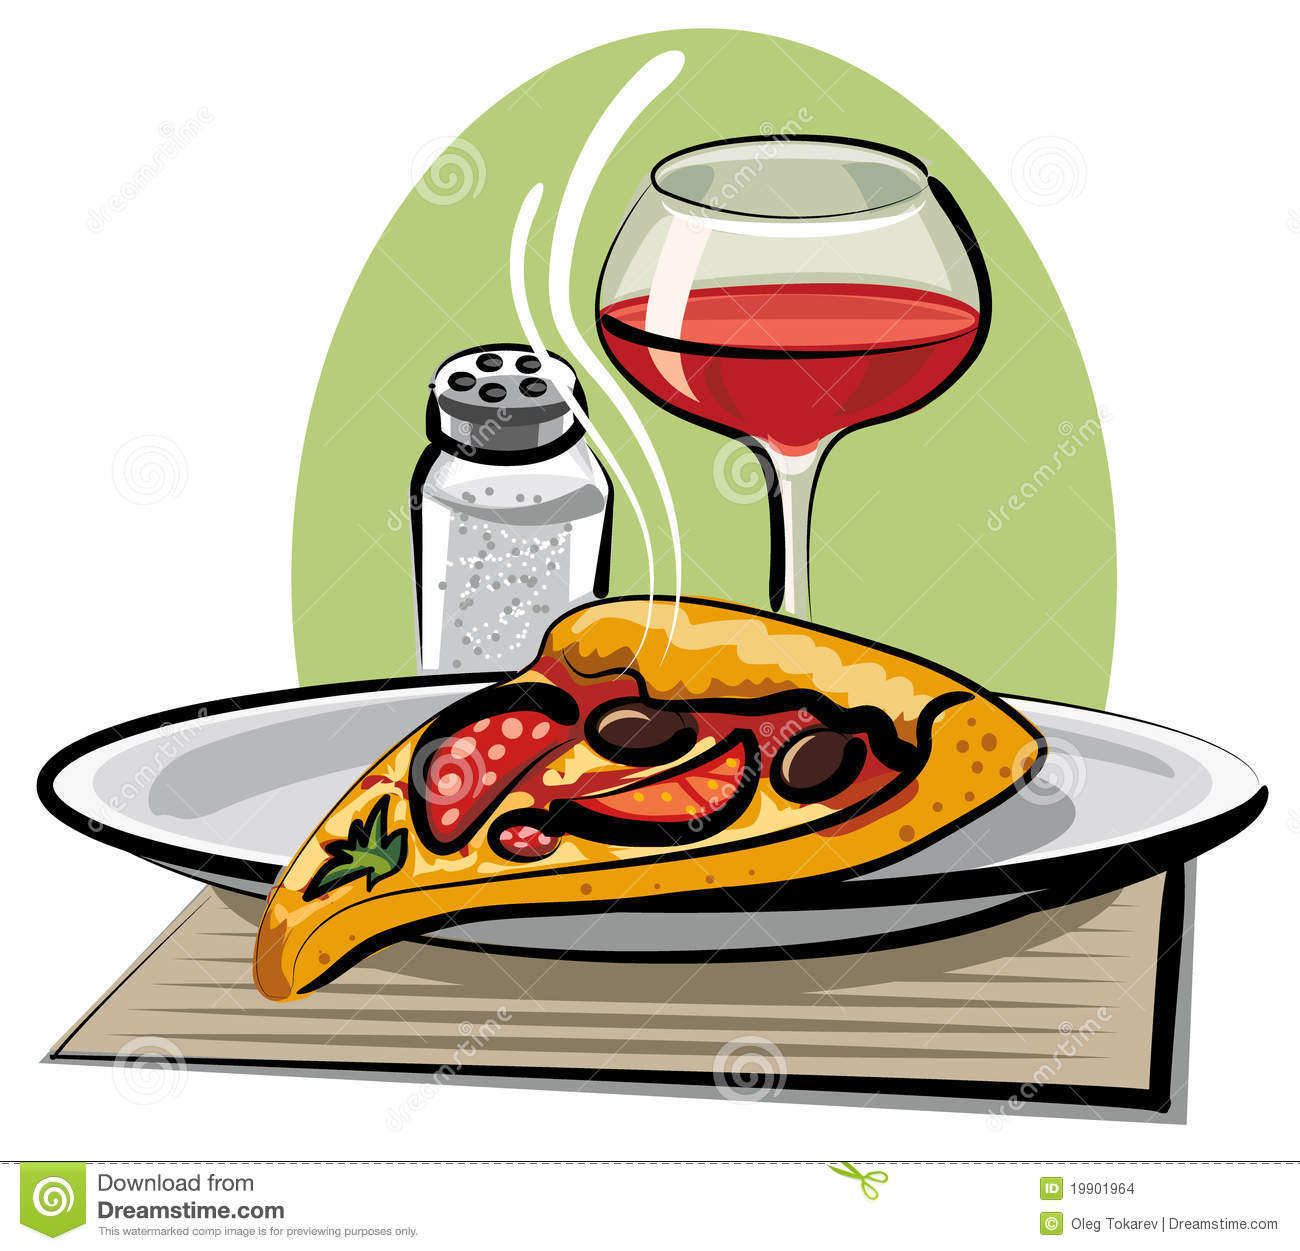 Hot pizza and wine stock illustration Illustration of  : hot pizza wine 19901964 from www.dreamstime.com size 1300 x 1251 jpeg 150kB